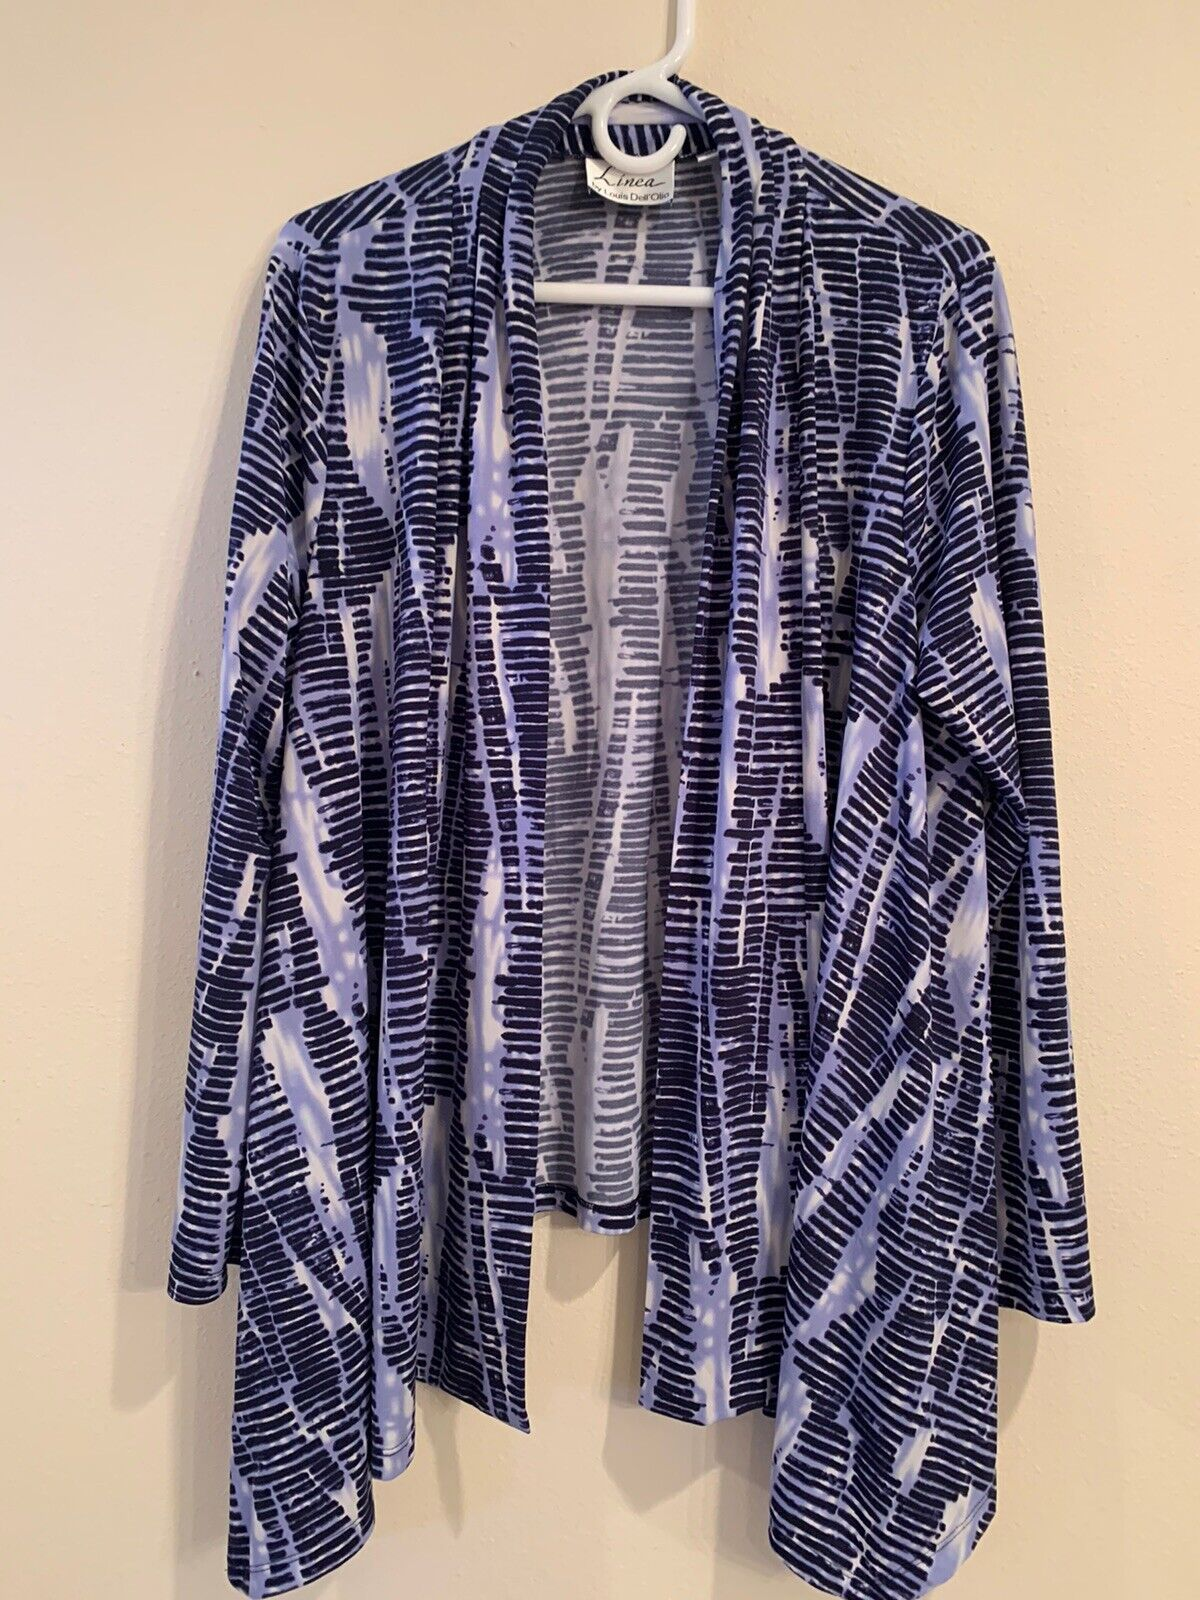 linea by louis dell'olio navy/lilac knit cardigan - image 1